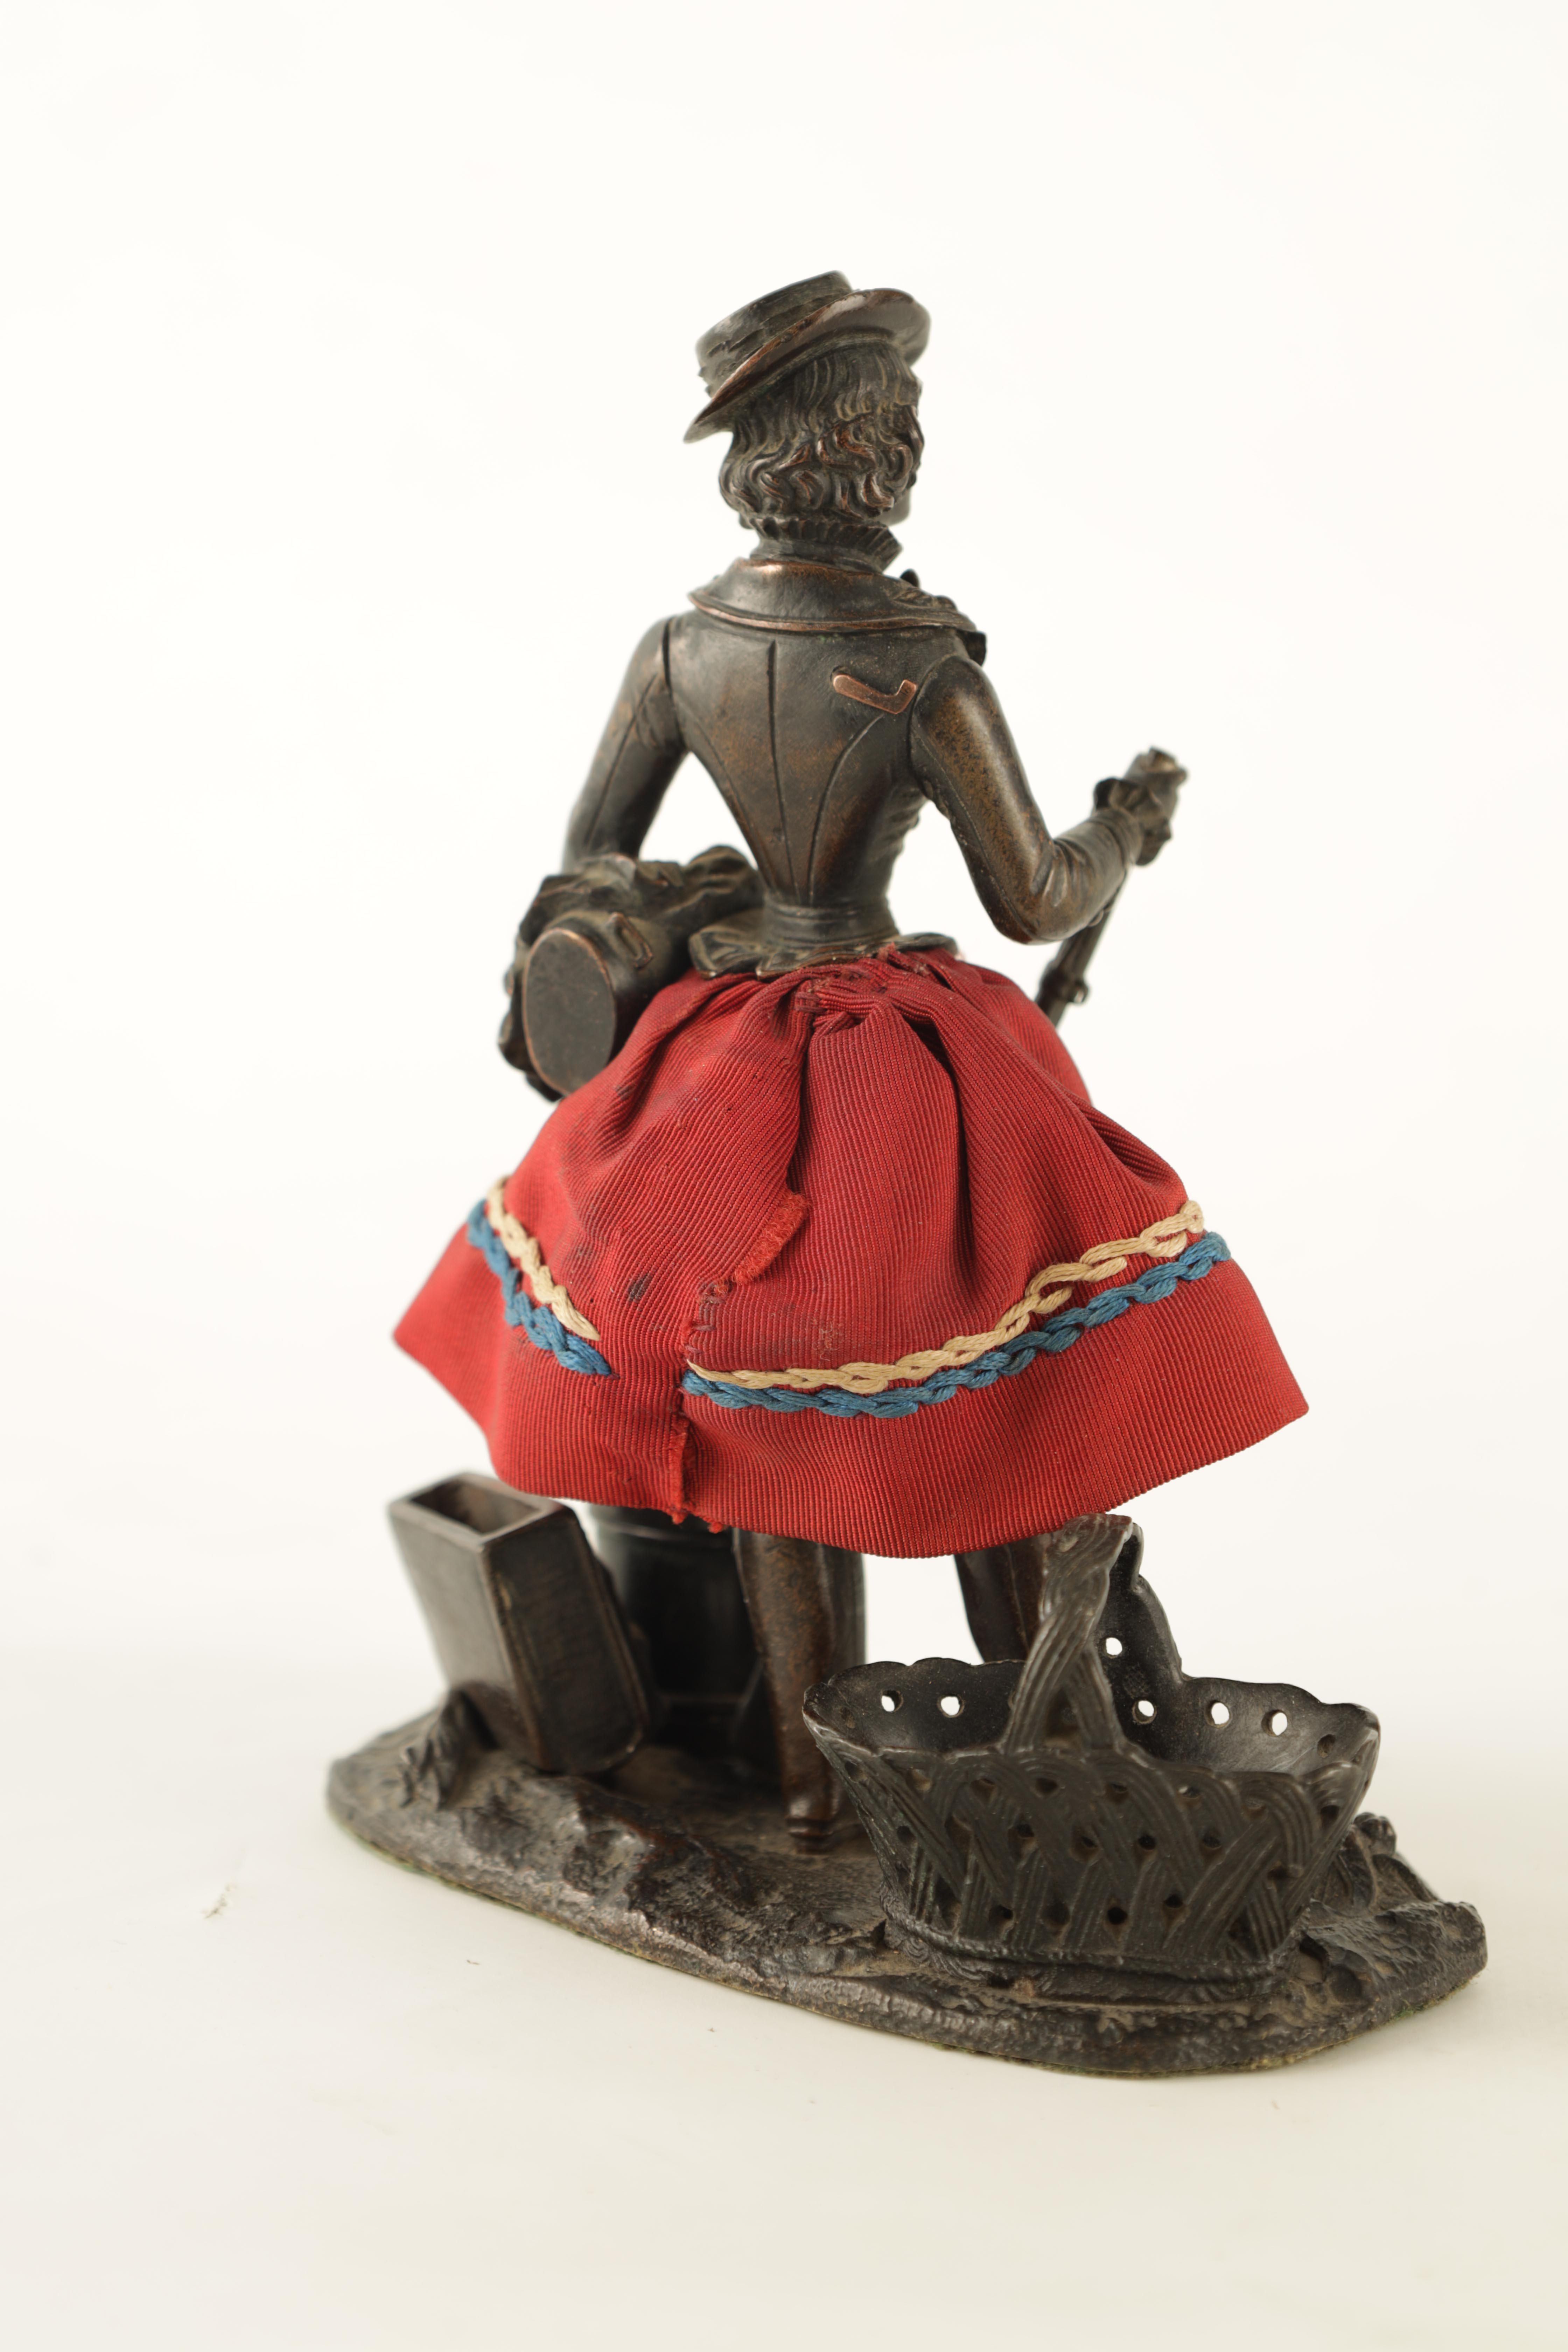 A LATE 19TH CENTURY NOVELTY BRONZE DESK COMPENDIUM DEPICTING A LADY HOLDING A RIFFLE with red - Image 3 of 10